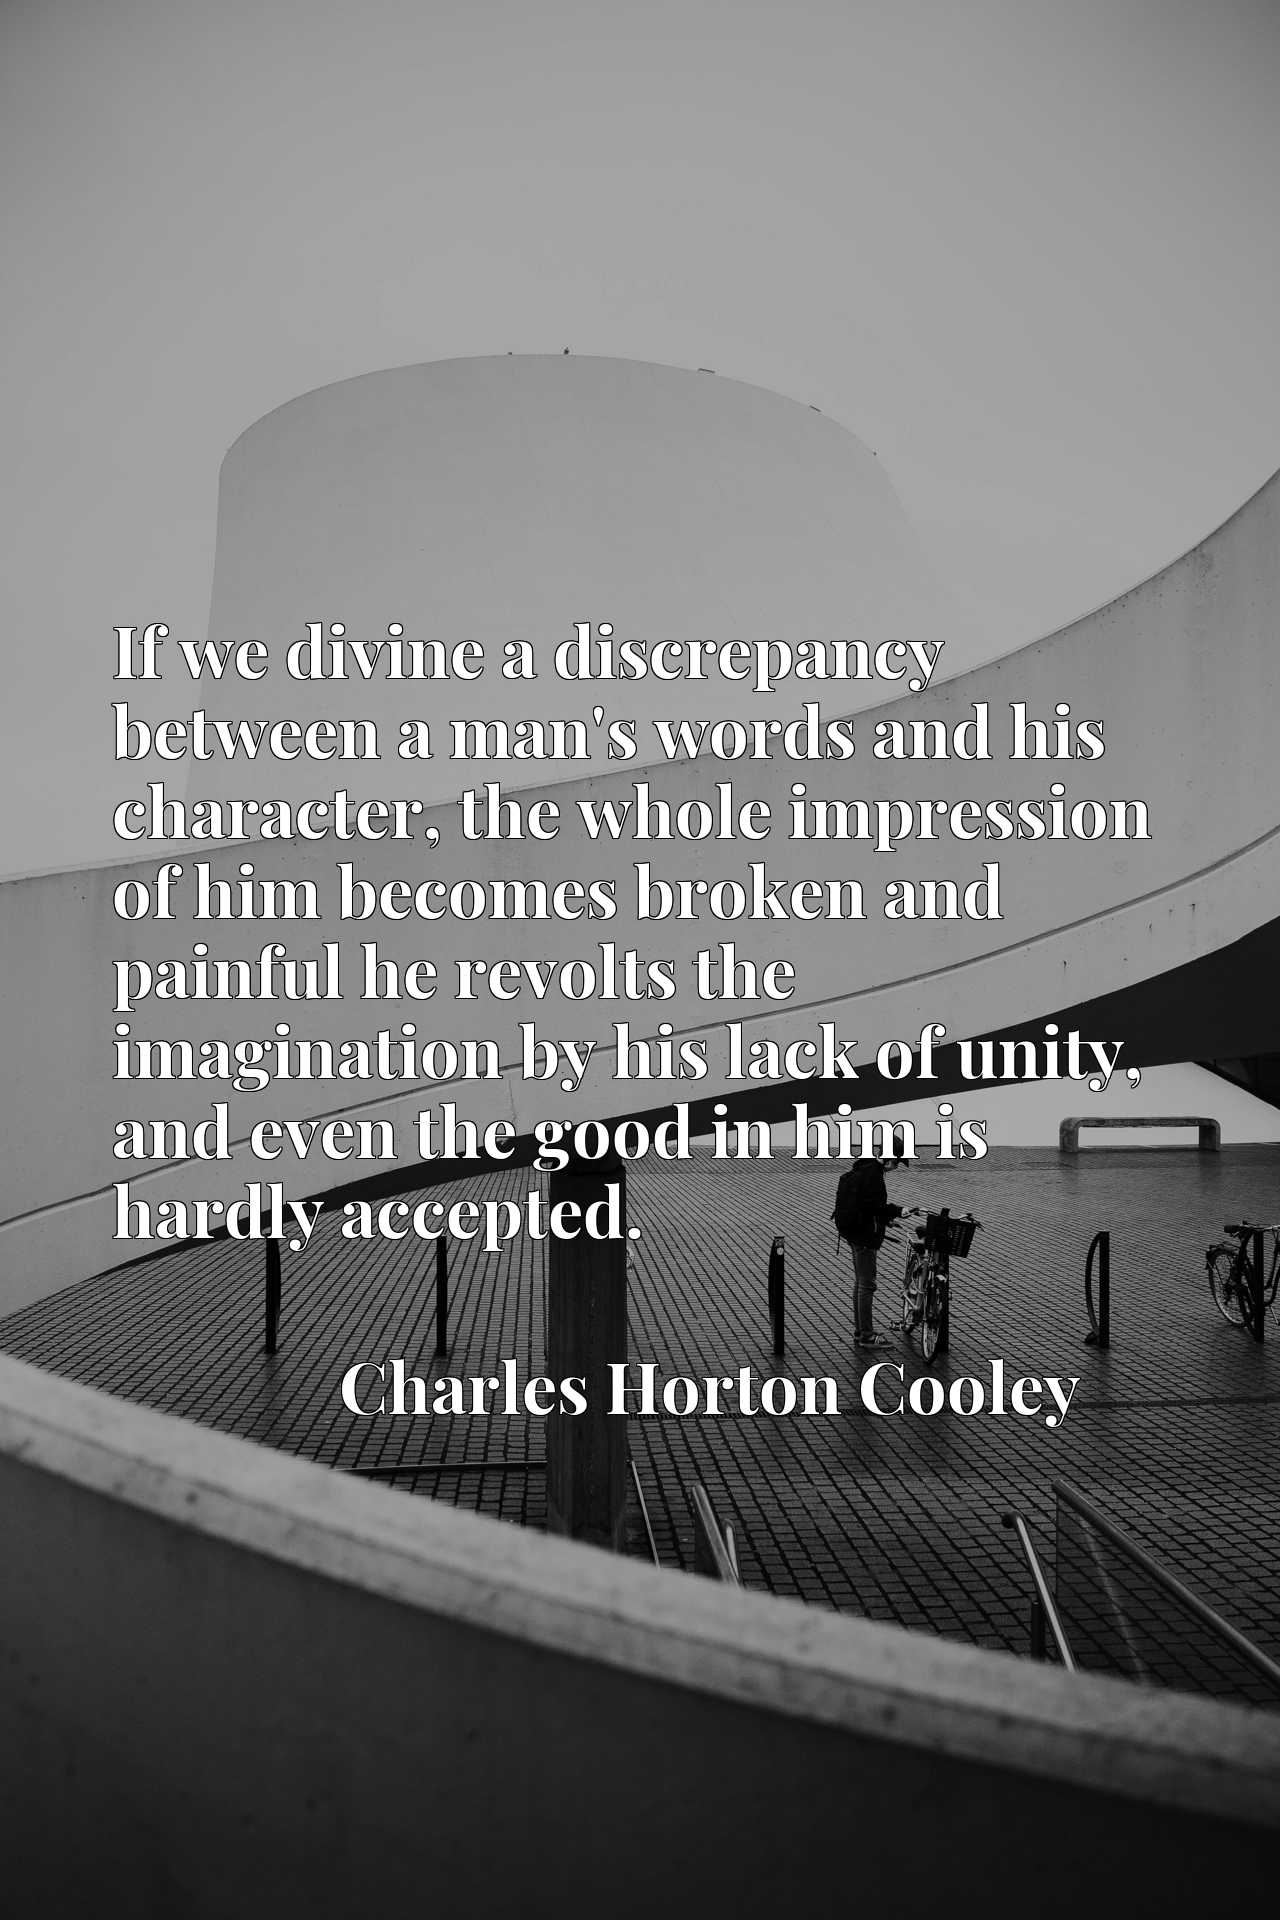 Quote Picture :If we divine a discrepancy between a man's words and his character, the whole impression of him becomes broken and painful he revolts the imagination by his lack of unity, and even the good in him is hardly accepted.